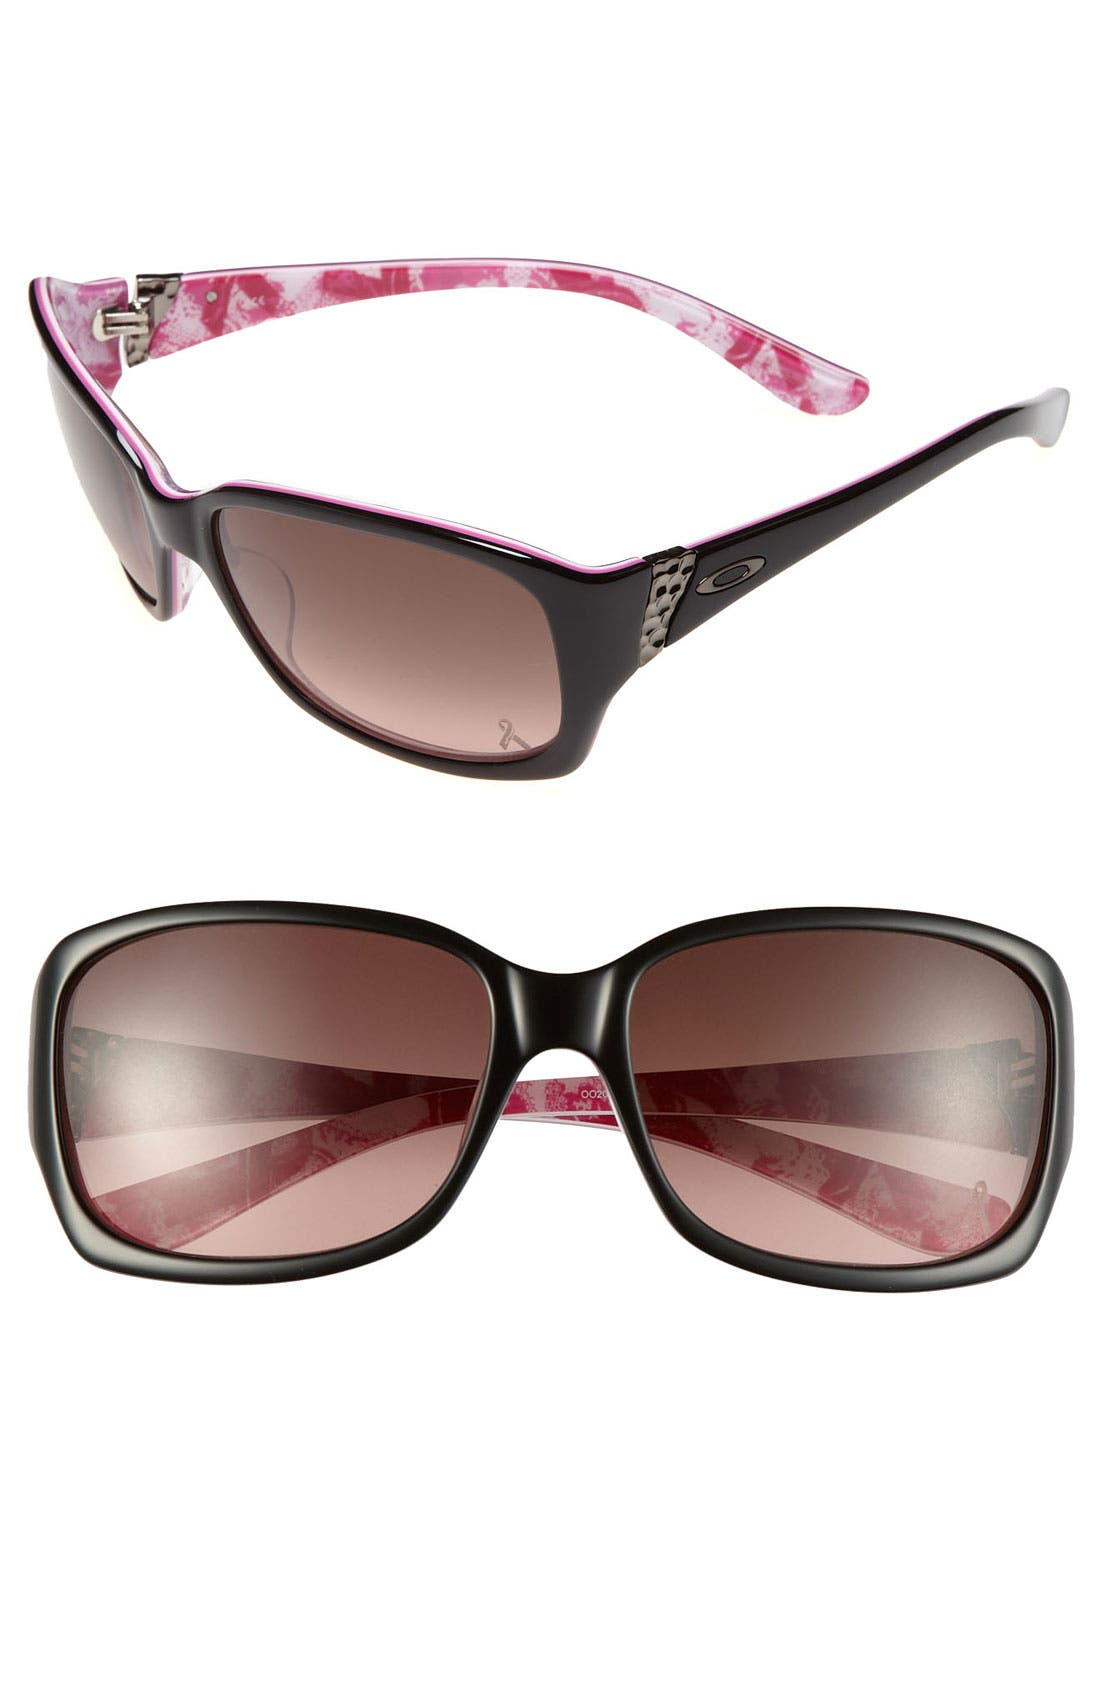 OAKLEY,                             'Discreet<sup>®</sup> - Breast Cancer Awareness Edition' 56mm Sunglasses,                             Main thumbnail 1, color,                             001